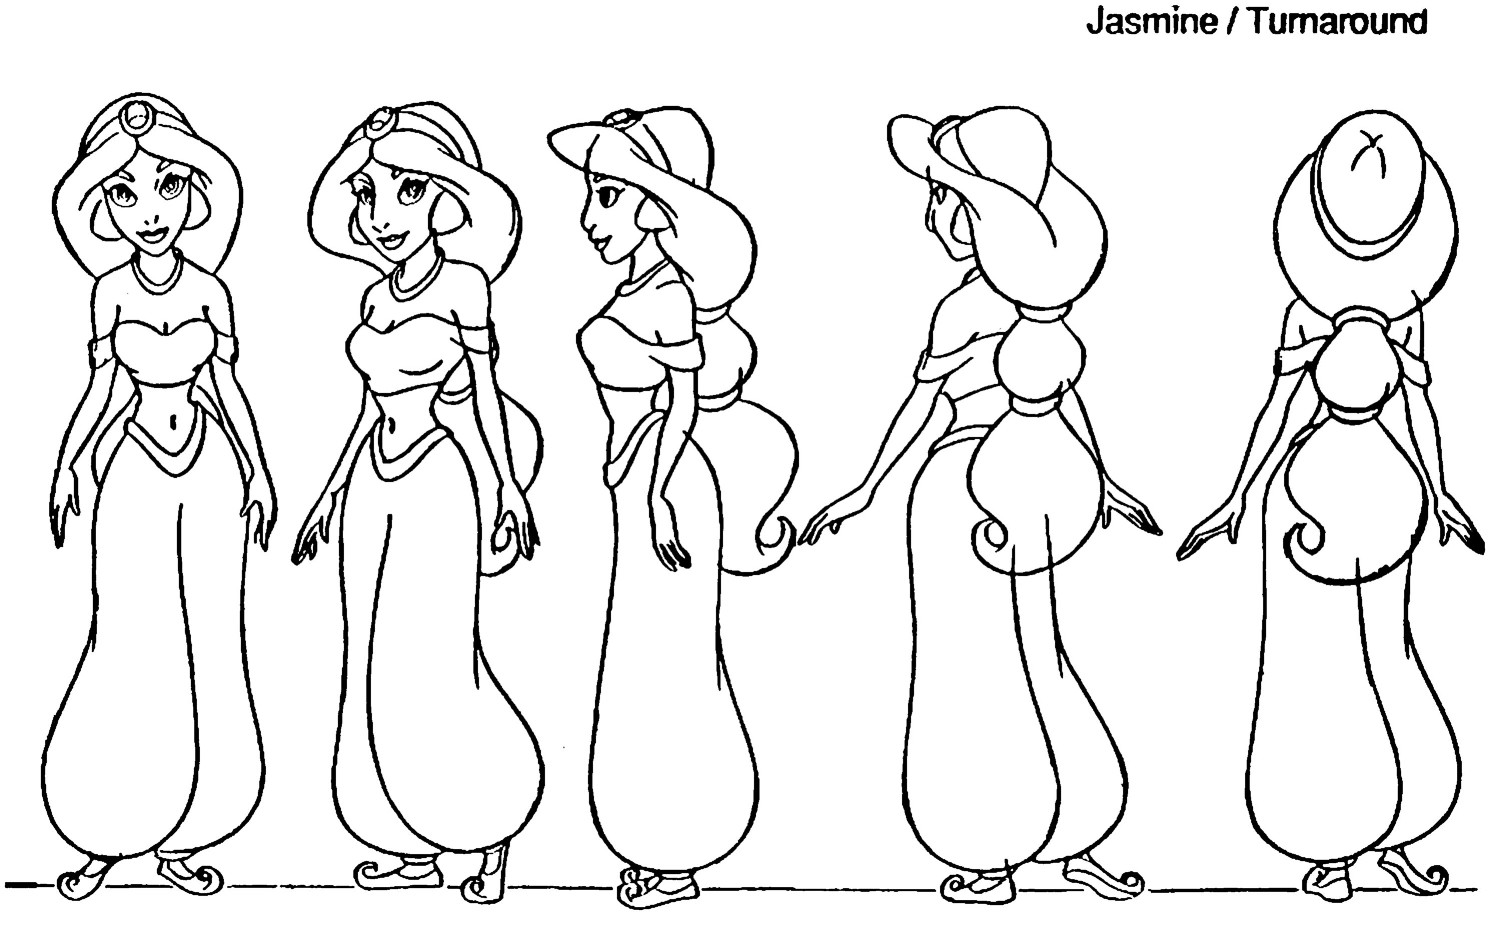 Disney Character Design Sheets : Http animationarchive classic characters goofy